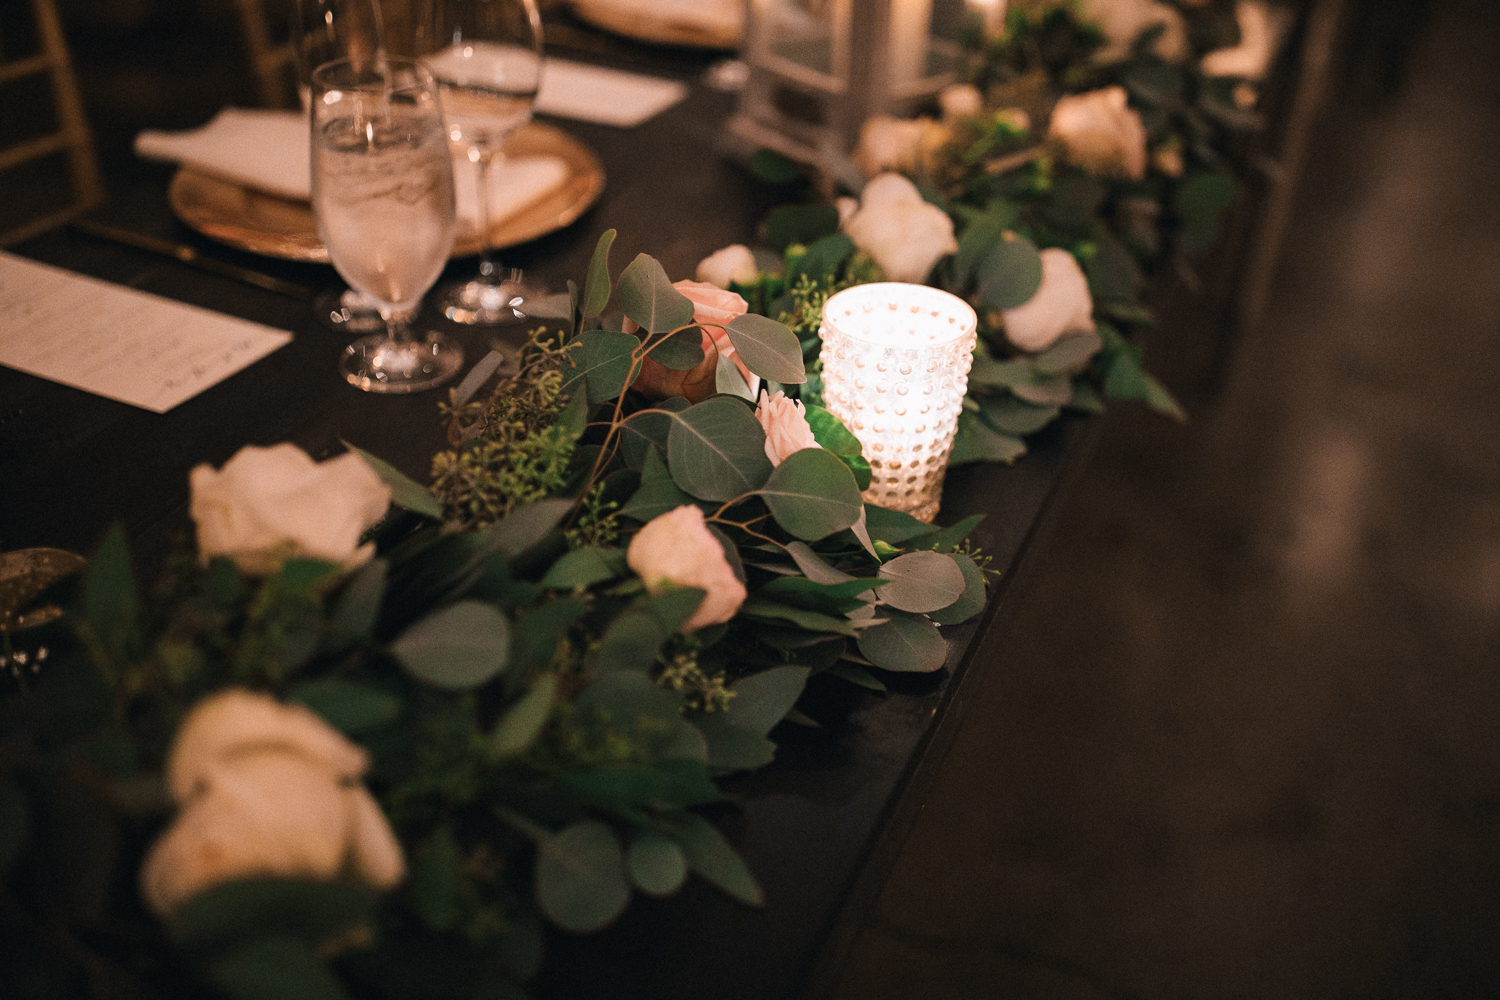 2018_08_ 112018.08.11 Cline Vinyard Wedding Blog Photos Edited For Web 0064.jpg